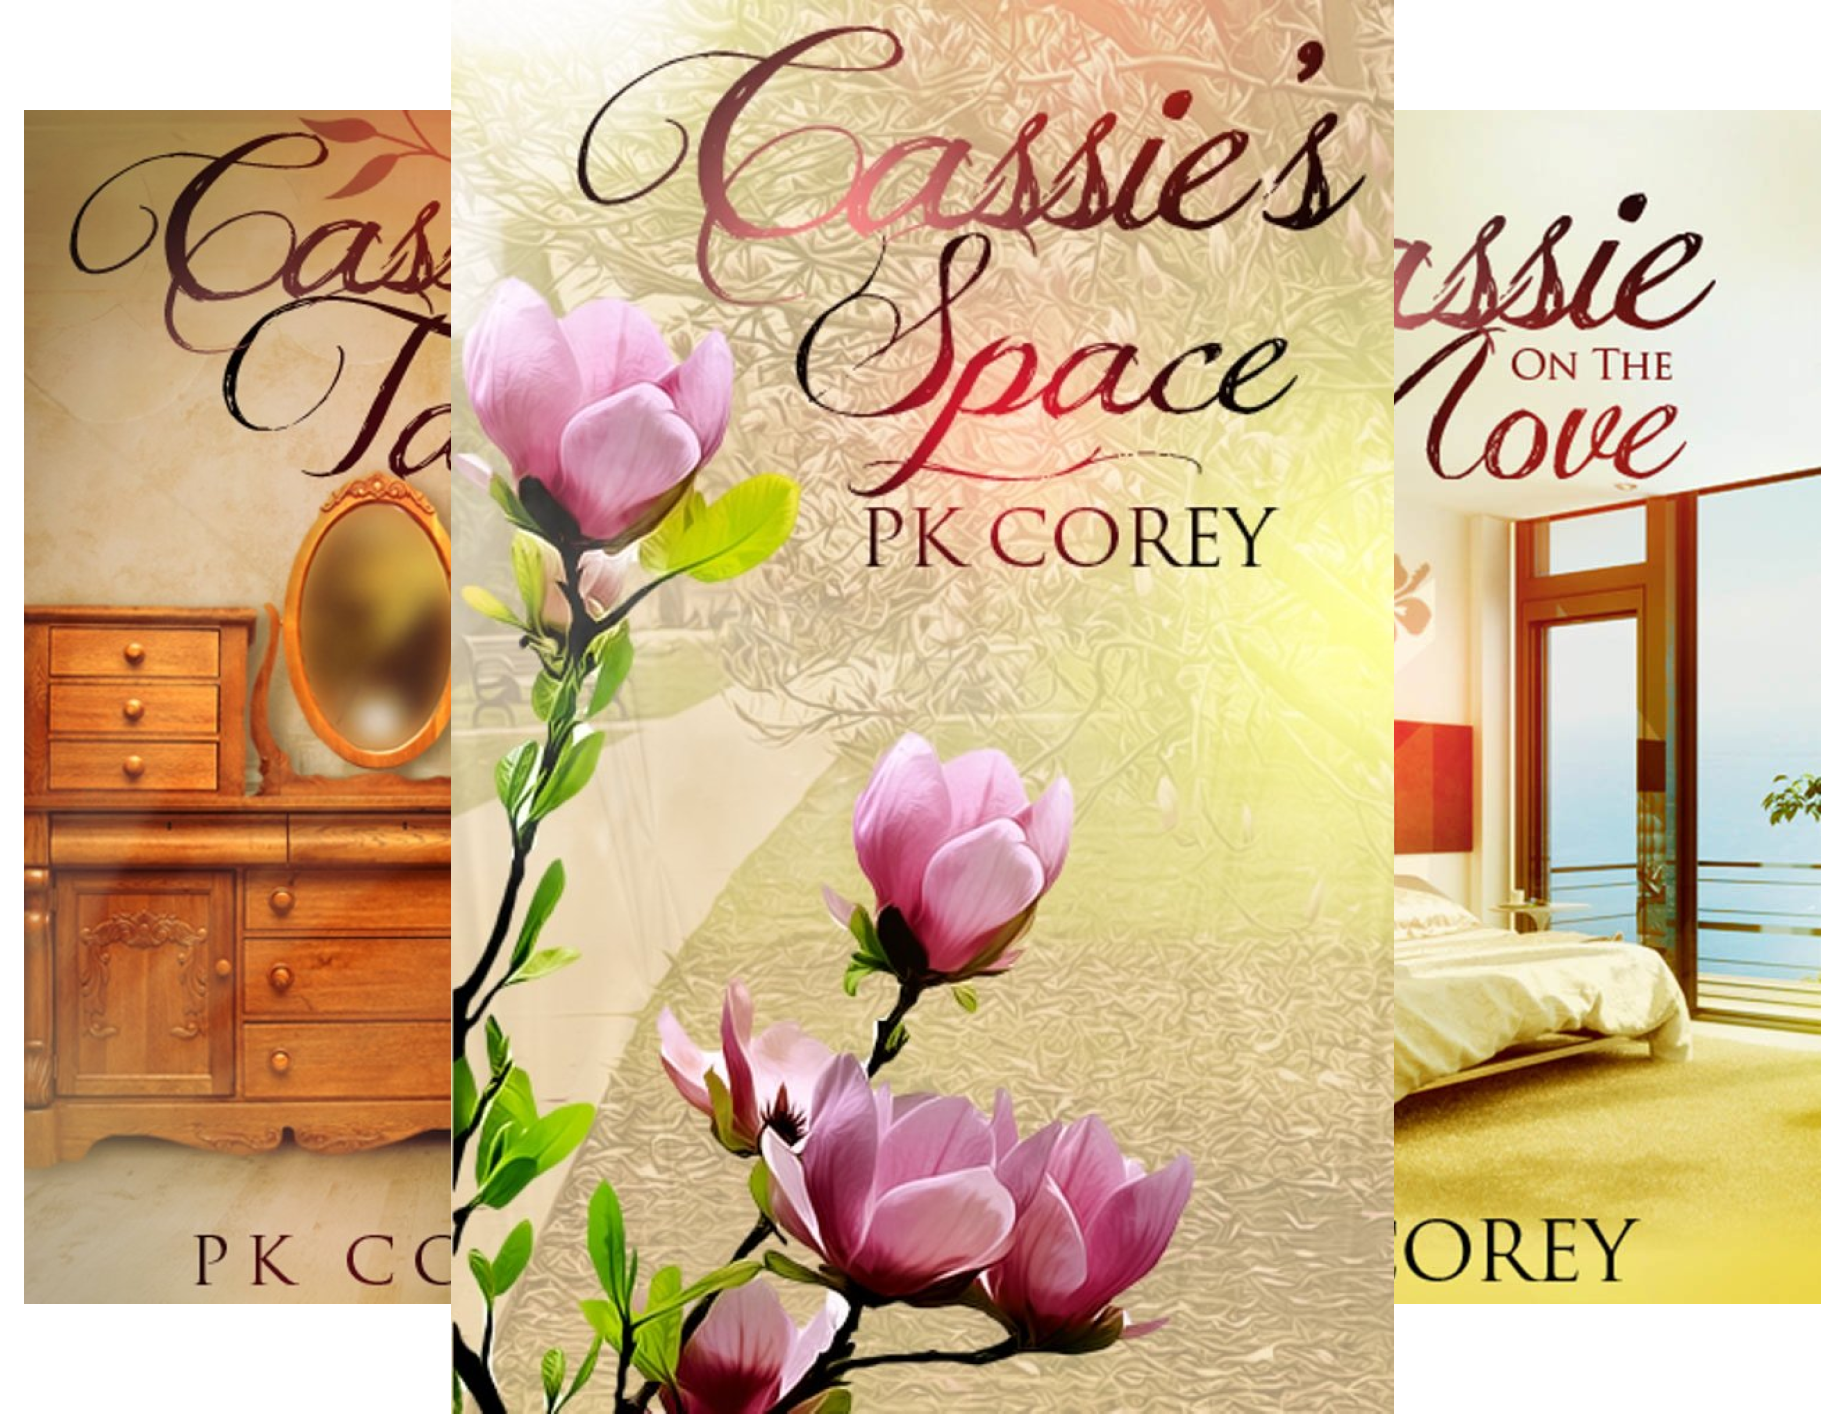 Cassie's Space (10 Book Series)